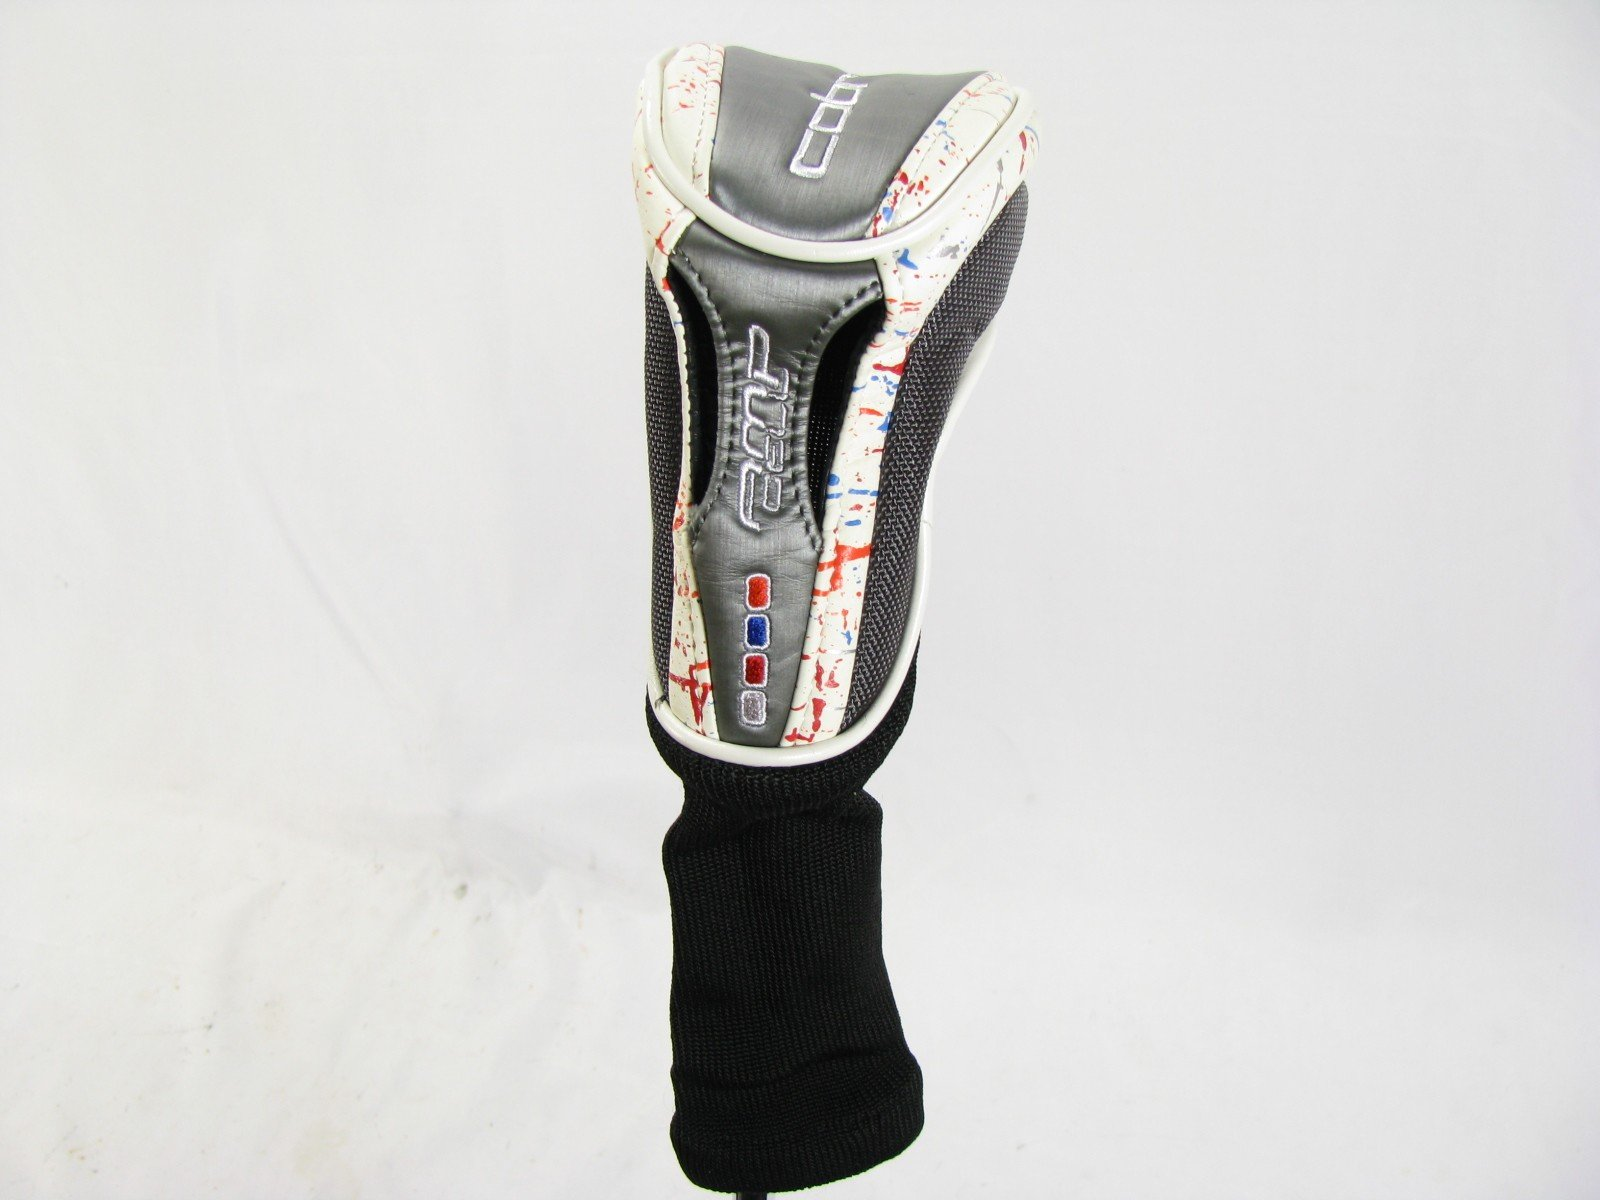 NEW Cobra AMP Cell Hybrid Headcover 2013 by Cobra